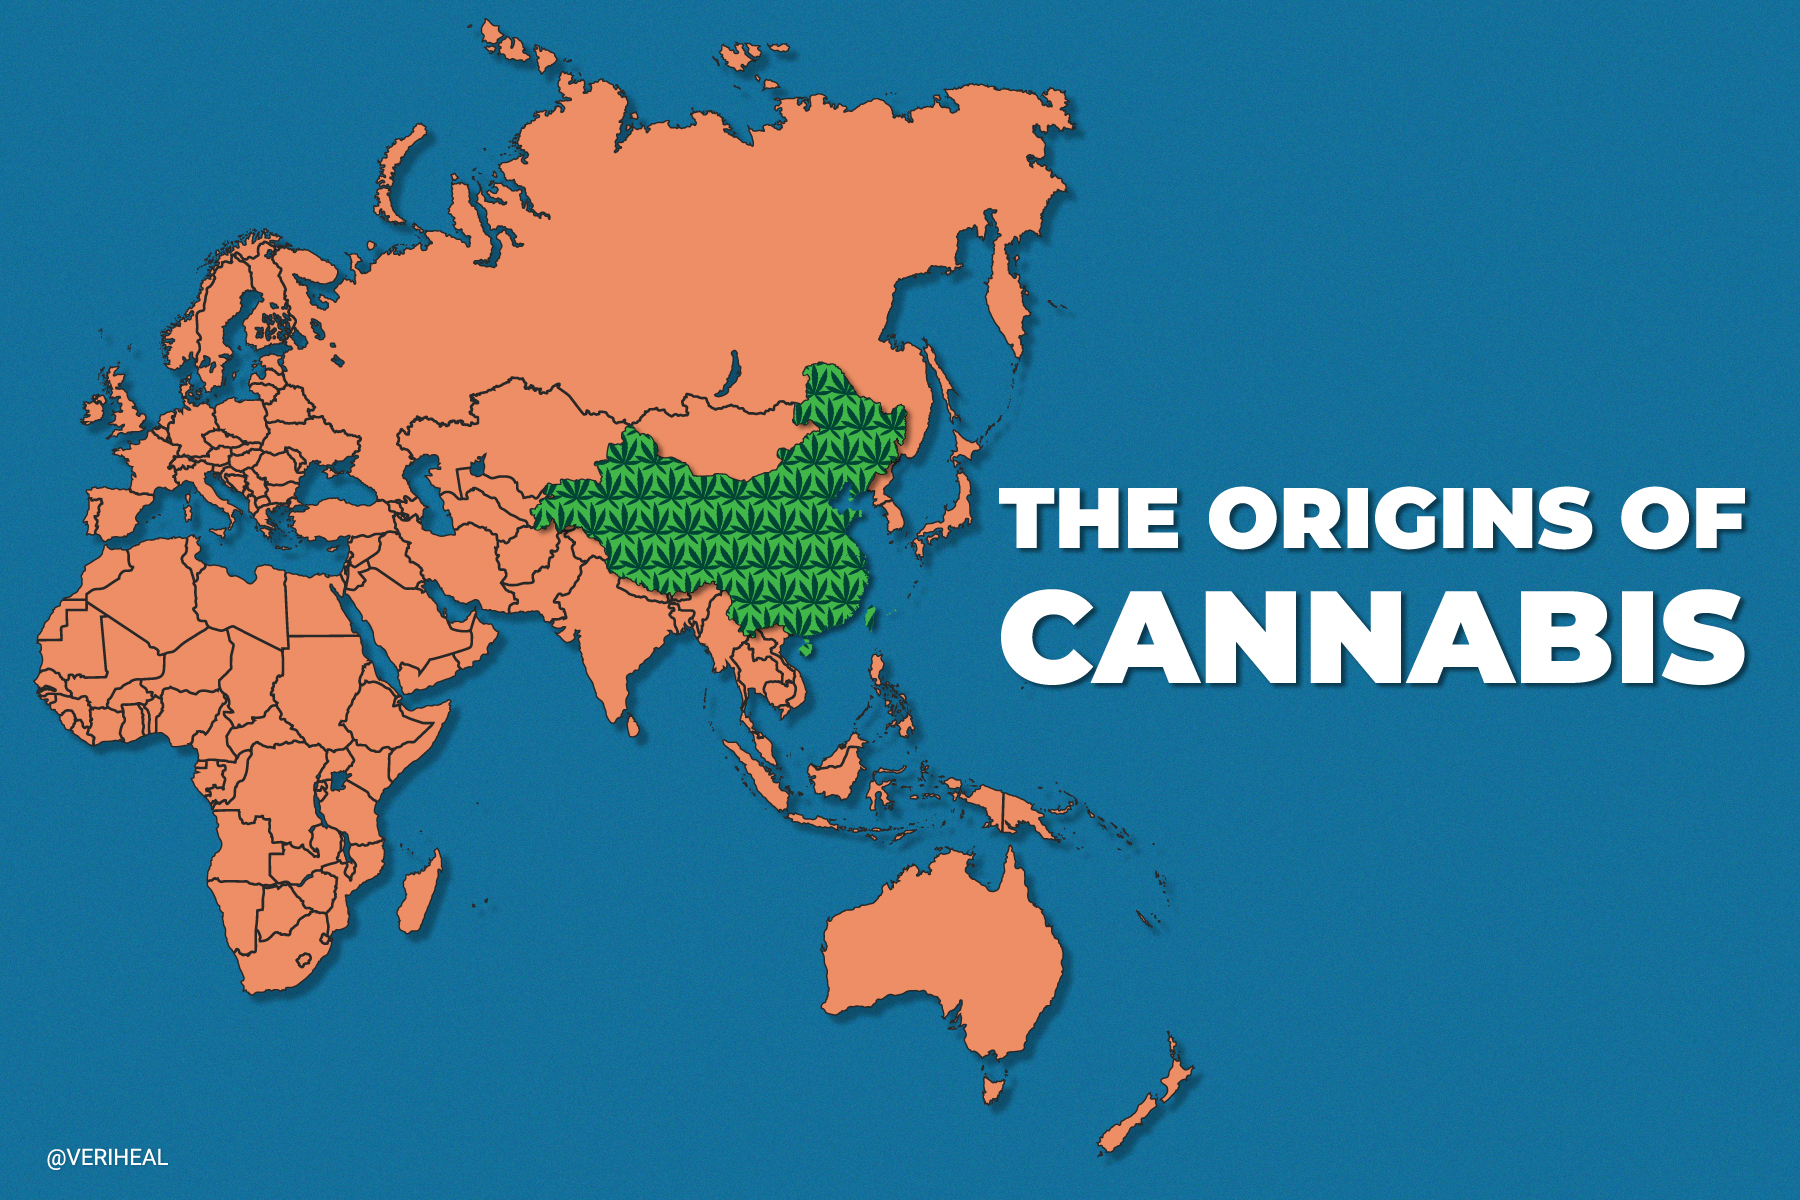 A Study Confirms That the Roots of Cannabis Originate in Northwest China